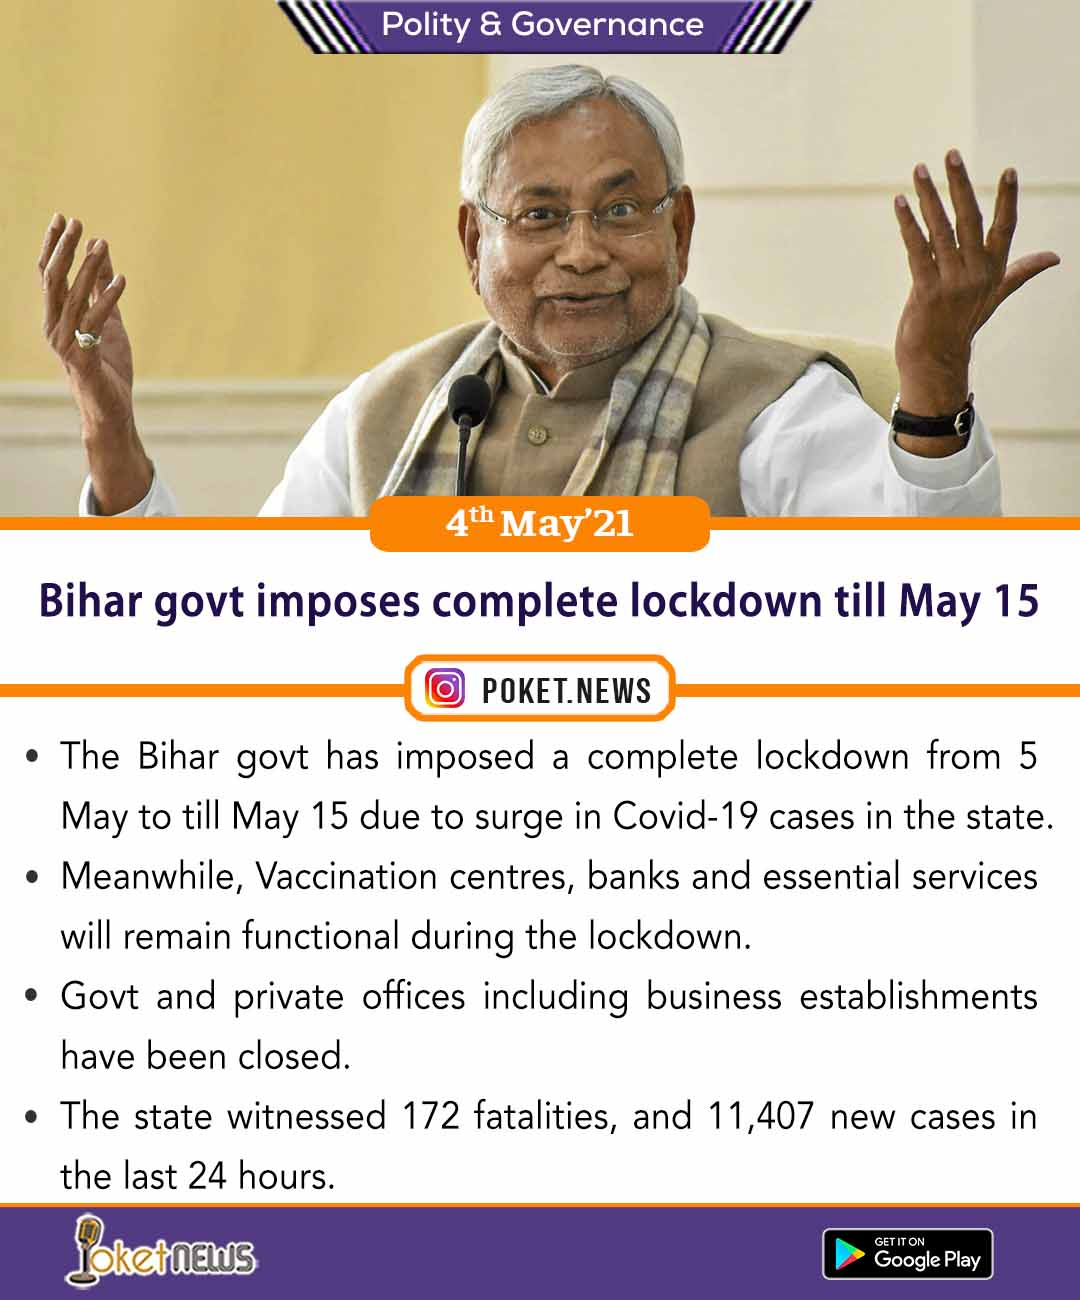 Bihar govt imposes complete lockdown till May 15